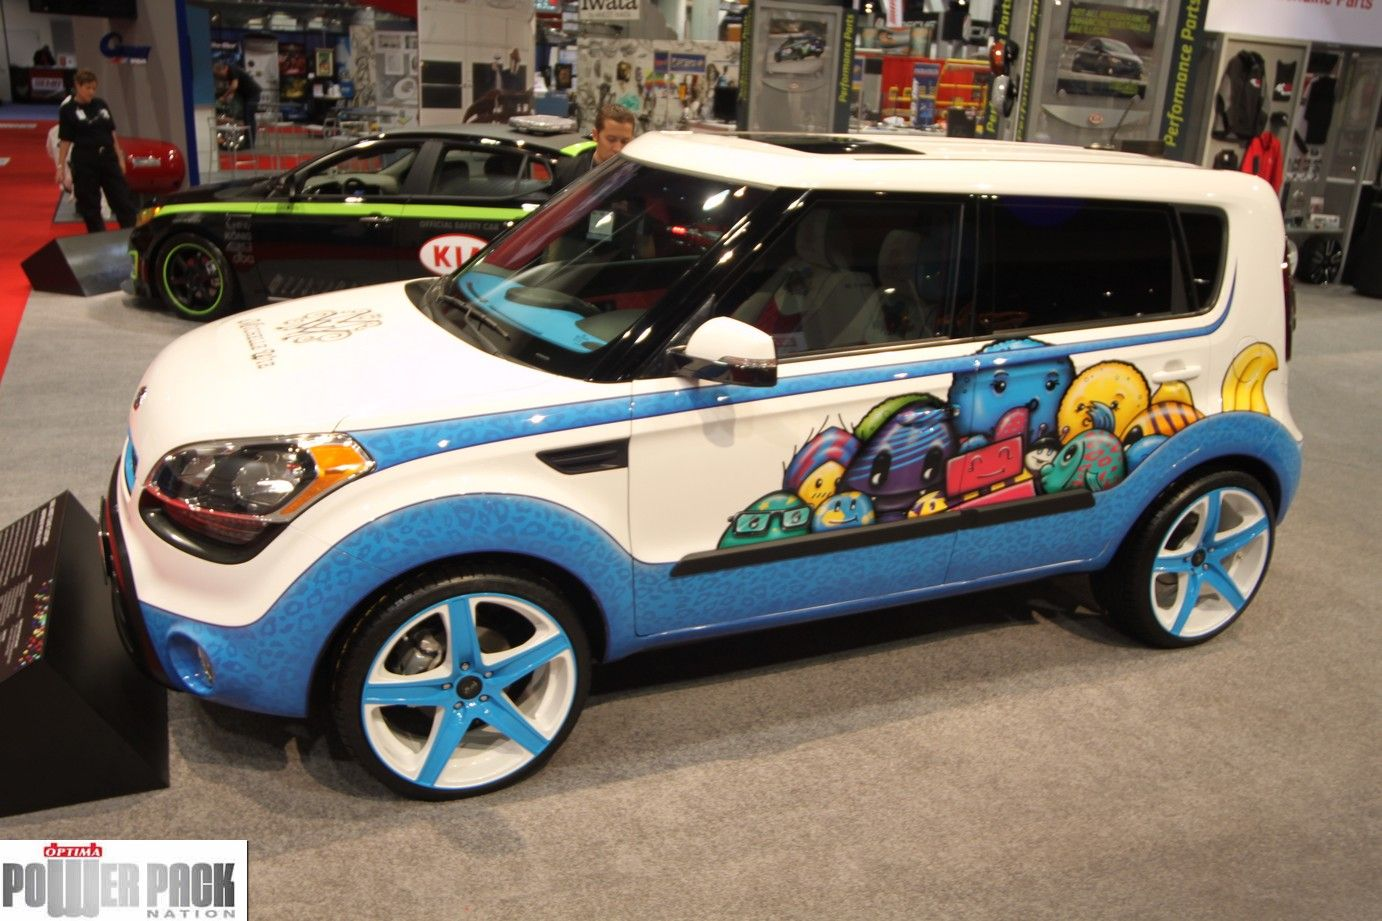 Built By West Coast Customs The Golf Themed Hole In One Kia Soul Was Inspired By Golfer Michelle Wie And Displayed At Sema Kia West Coast Customs Kia Soul